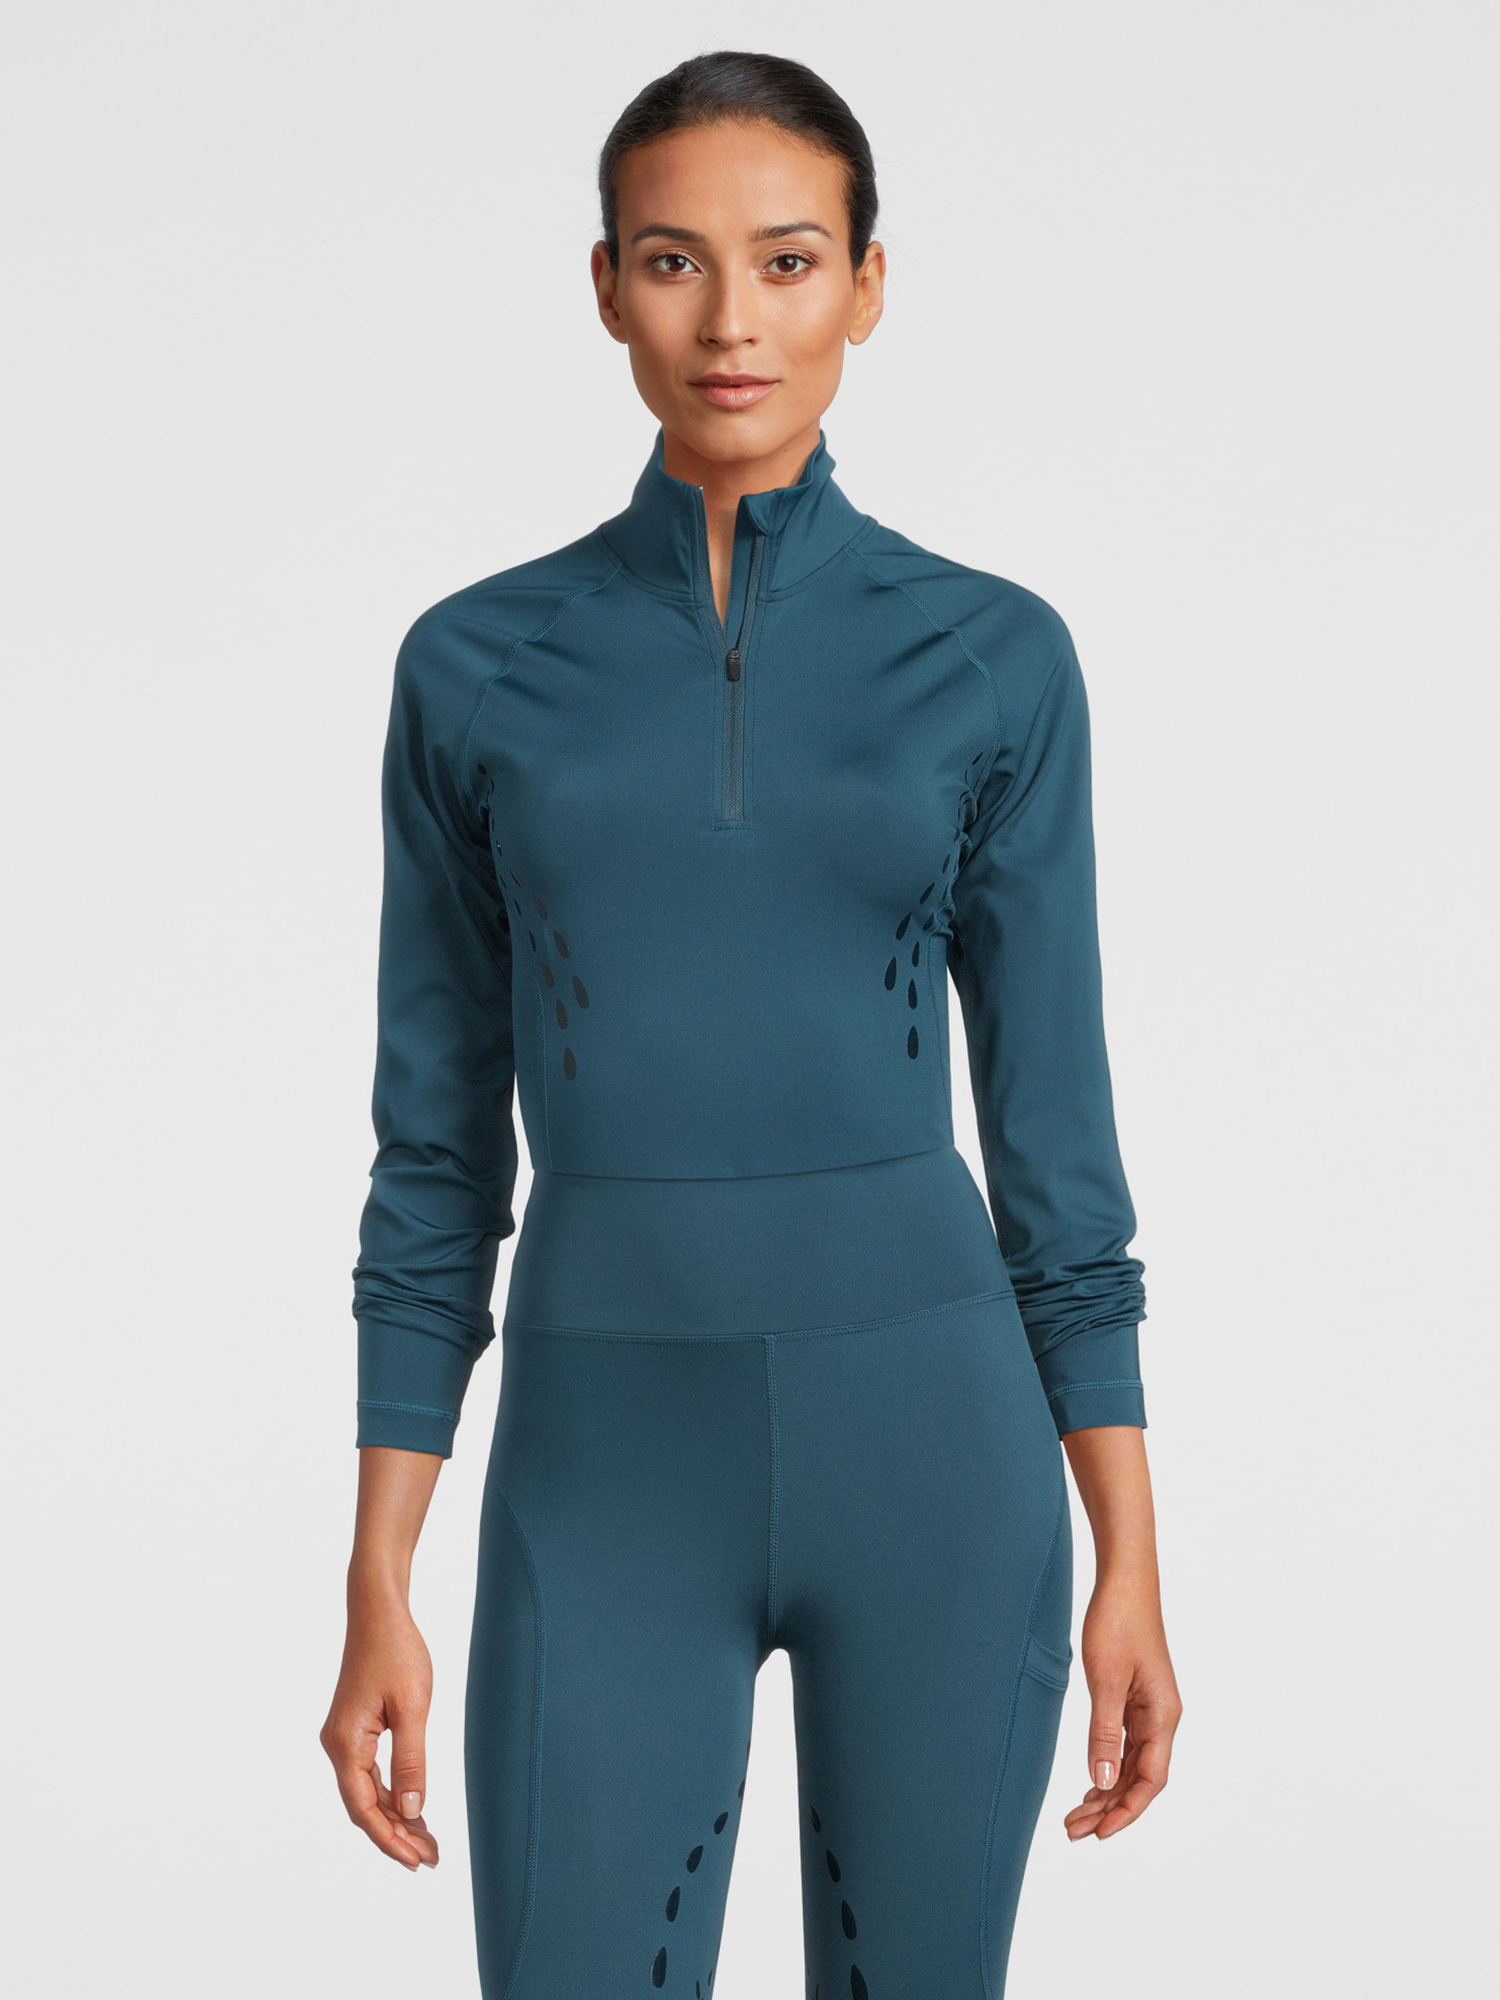 PS of Sweden Base layer, Tiffany, Neptuna